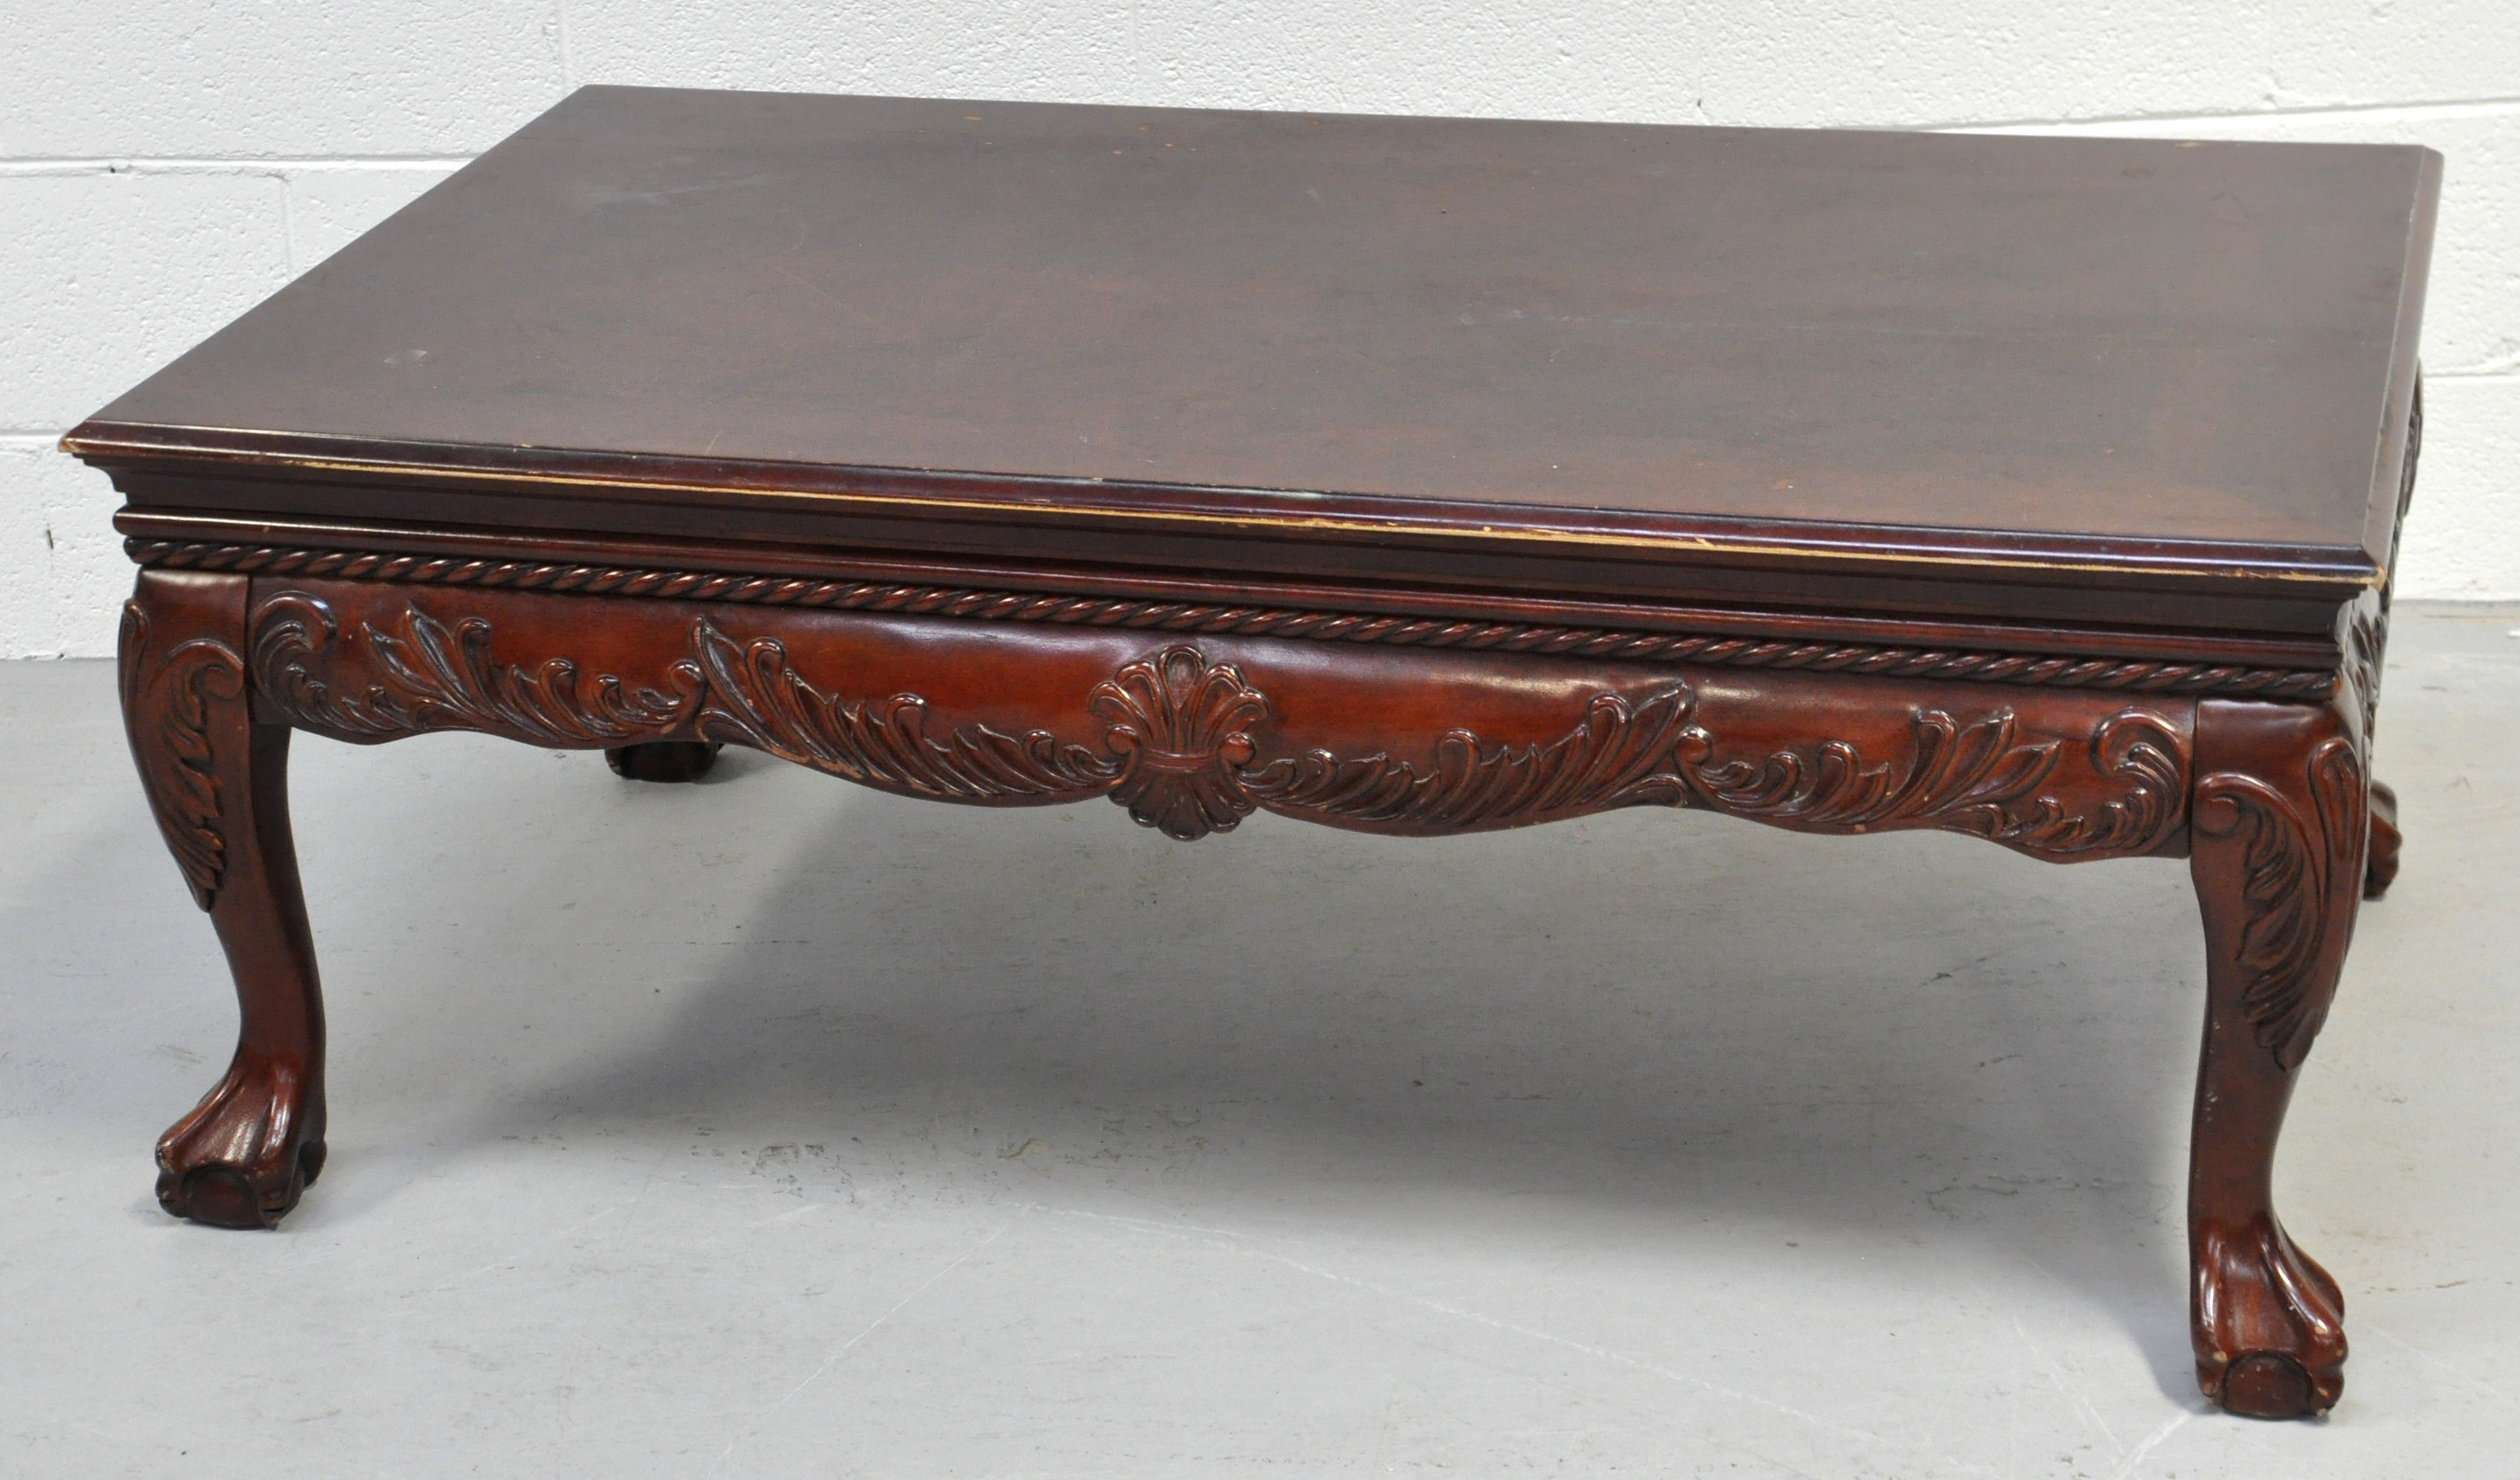 A modern rectangular coffee table with carved frieze cabriole